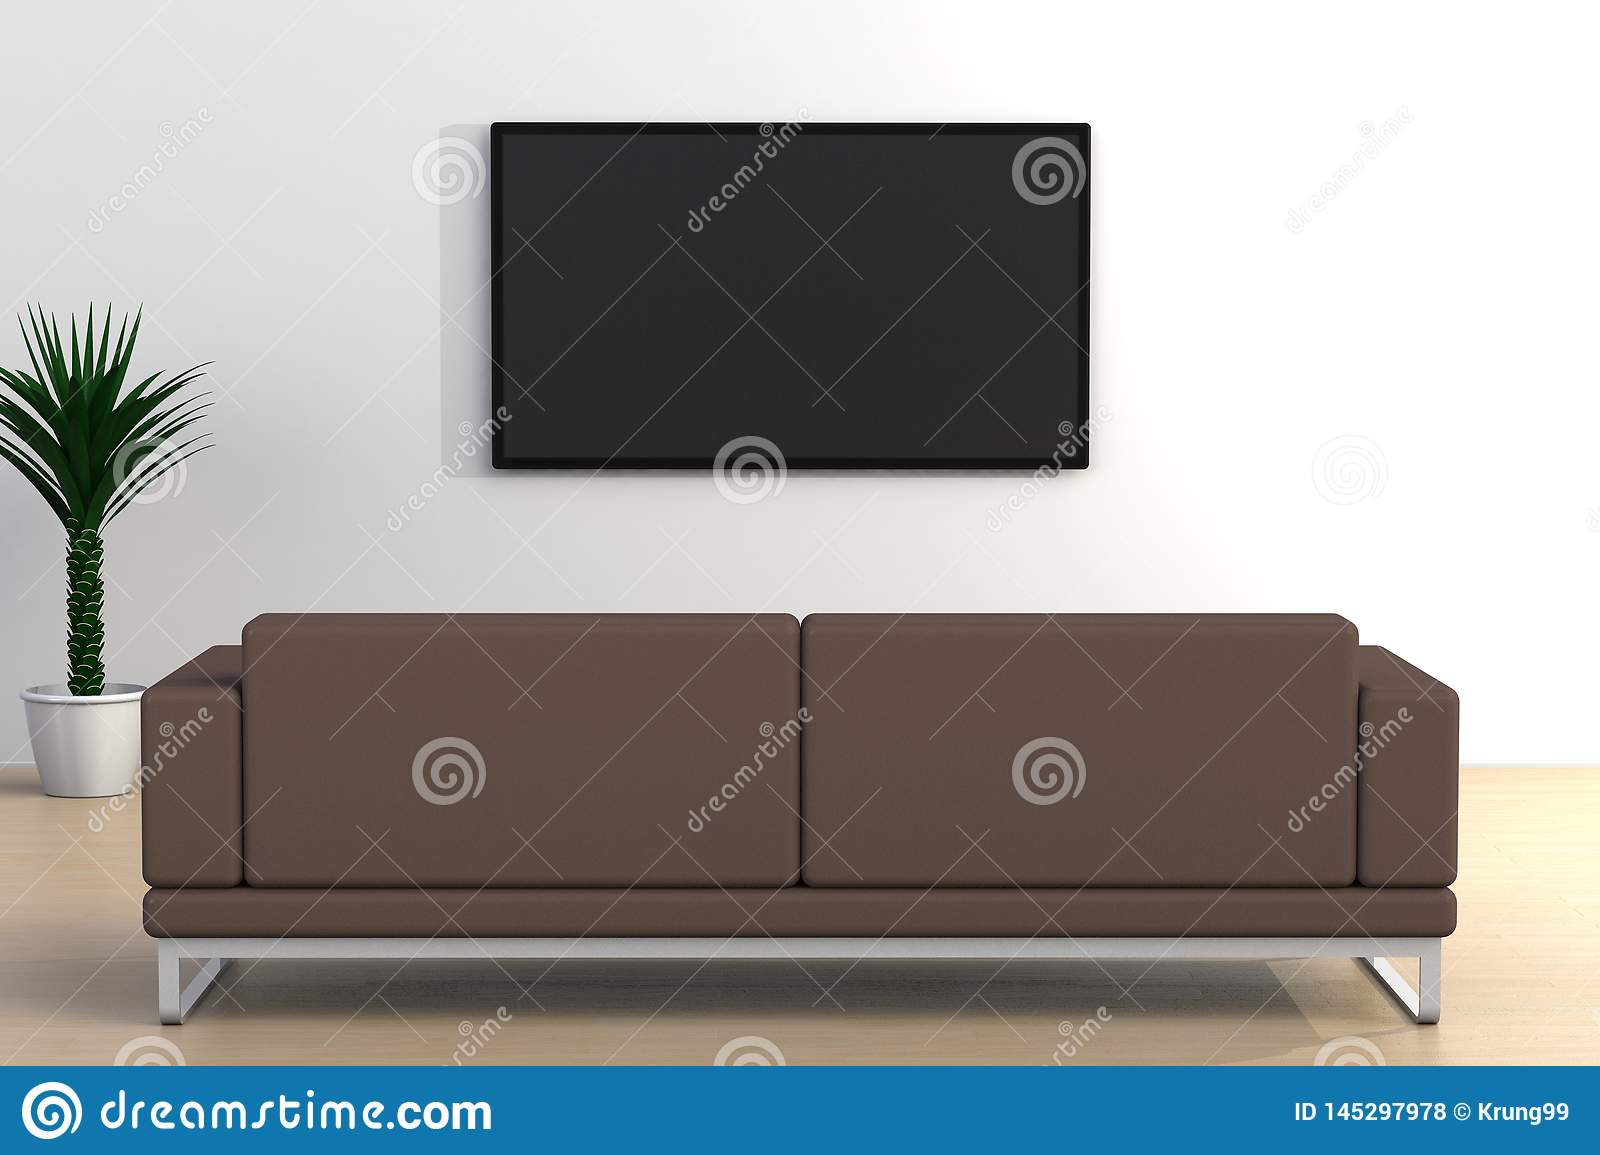 Interior Of Empty Room With Tv And Sofa Living Room Led Tv On White Wall Modern Style Stock Illustration Illustration Of Looking Room 145297978